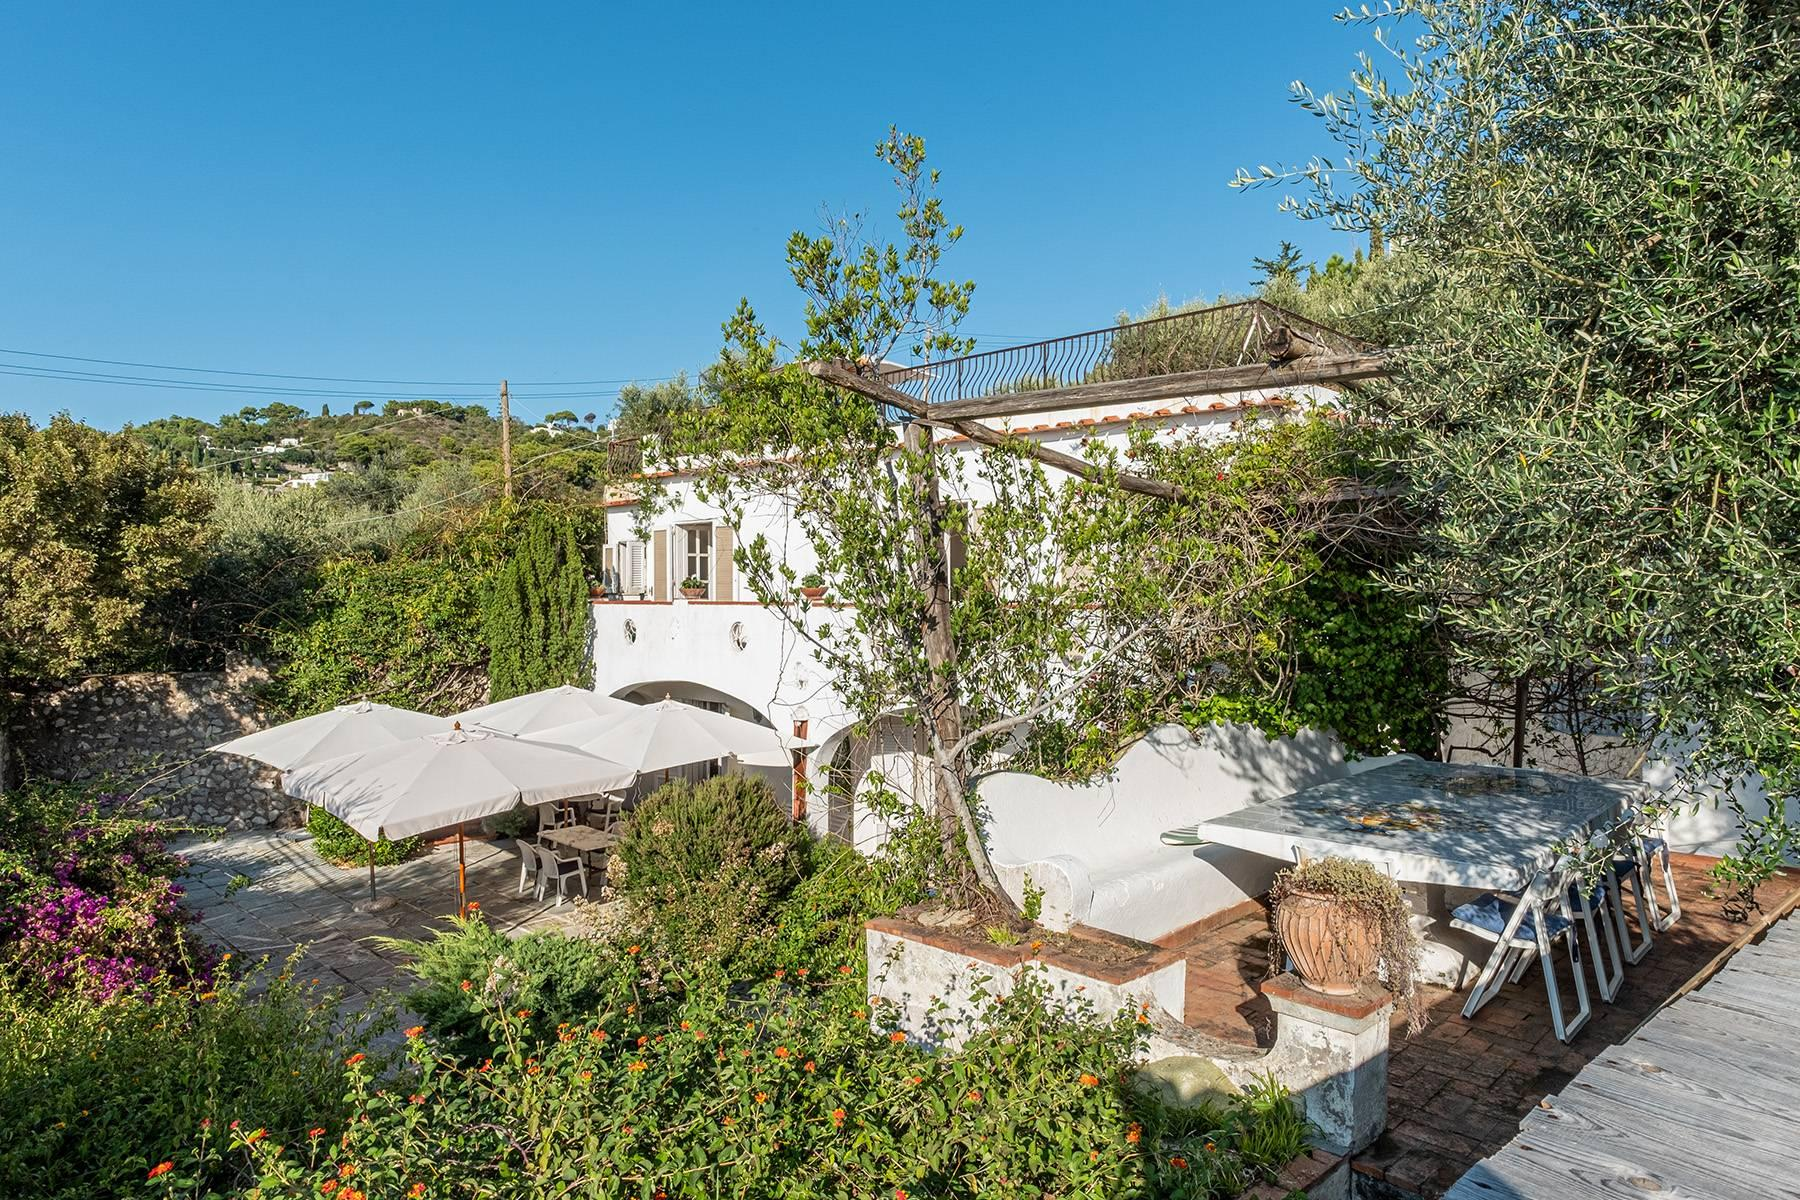 Charming villa with olive grove and swimming pool overlooking the sea - 3